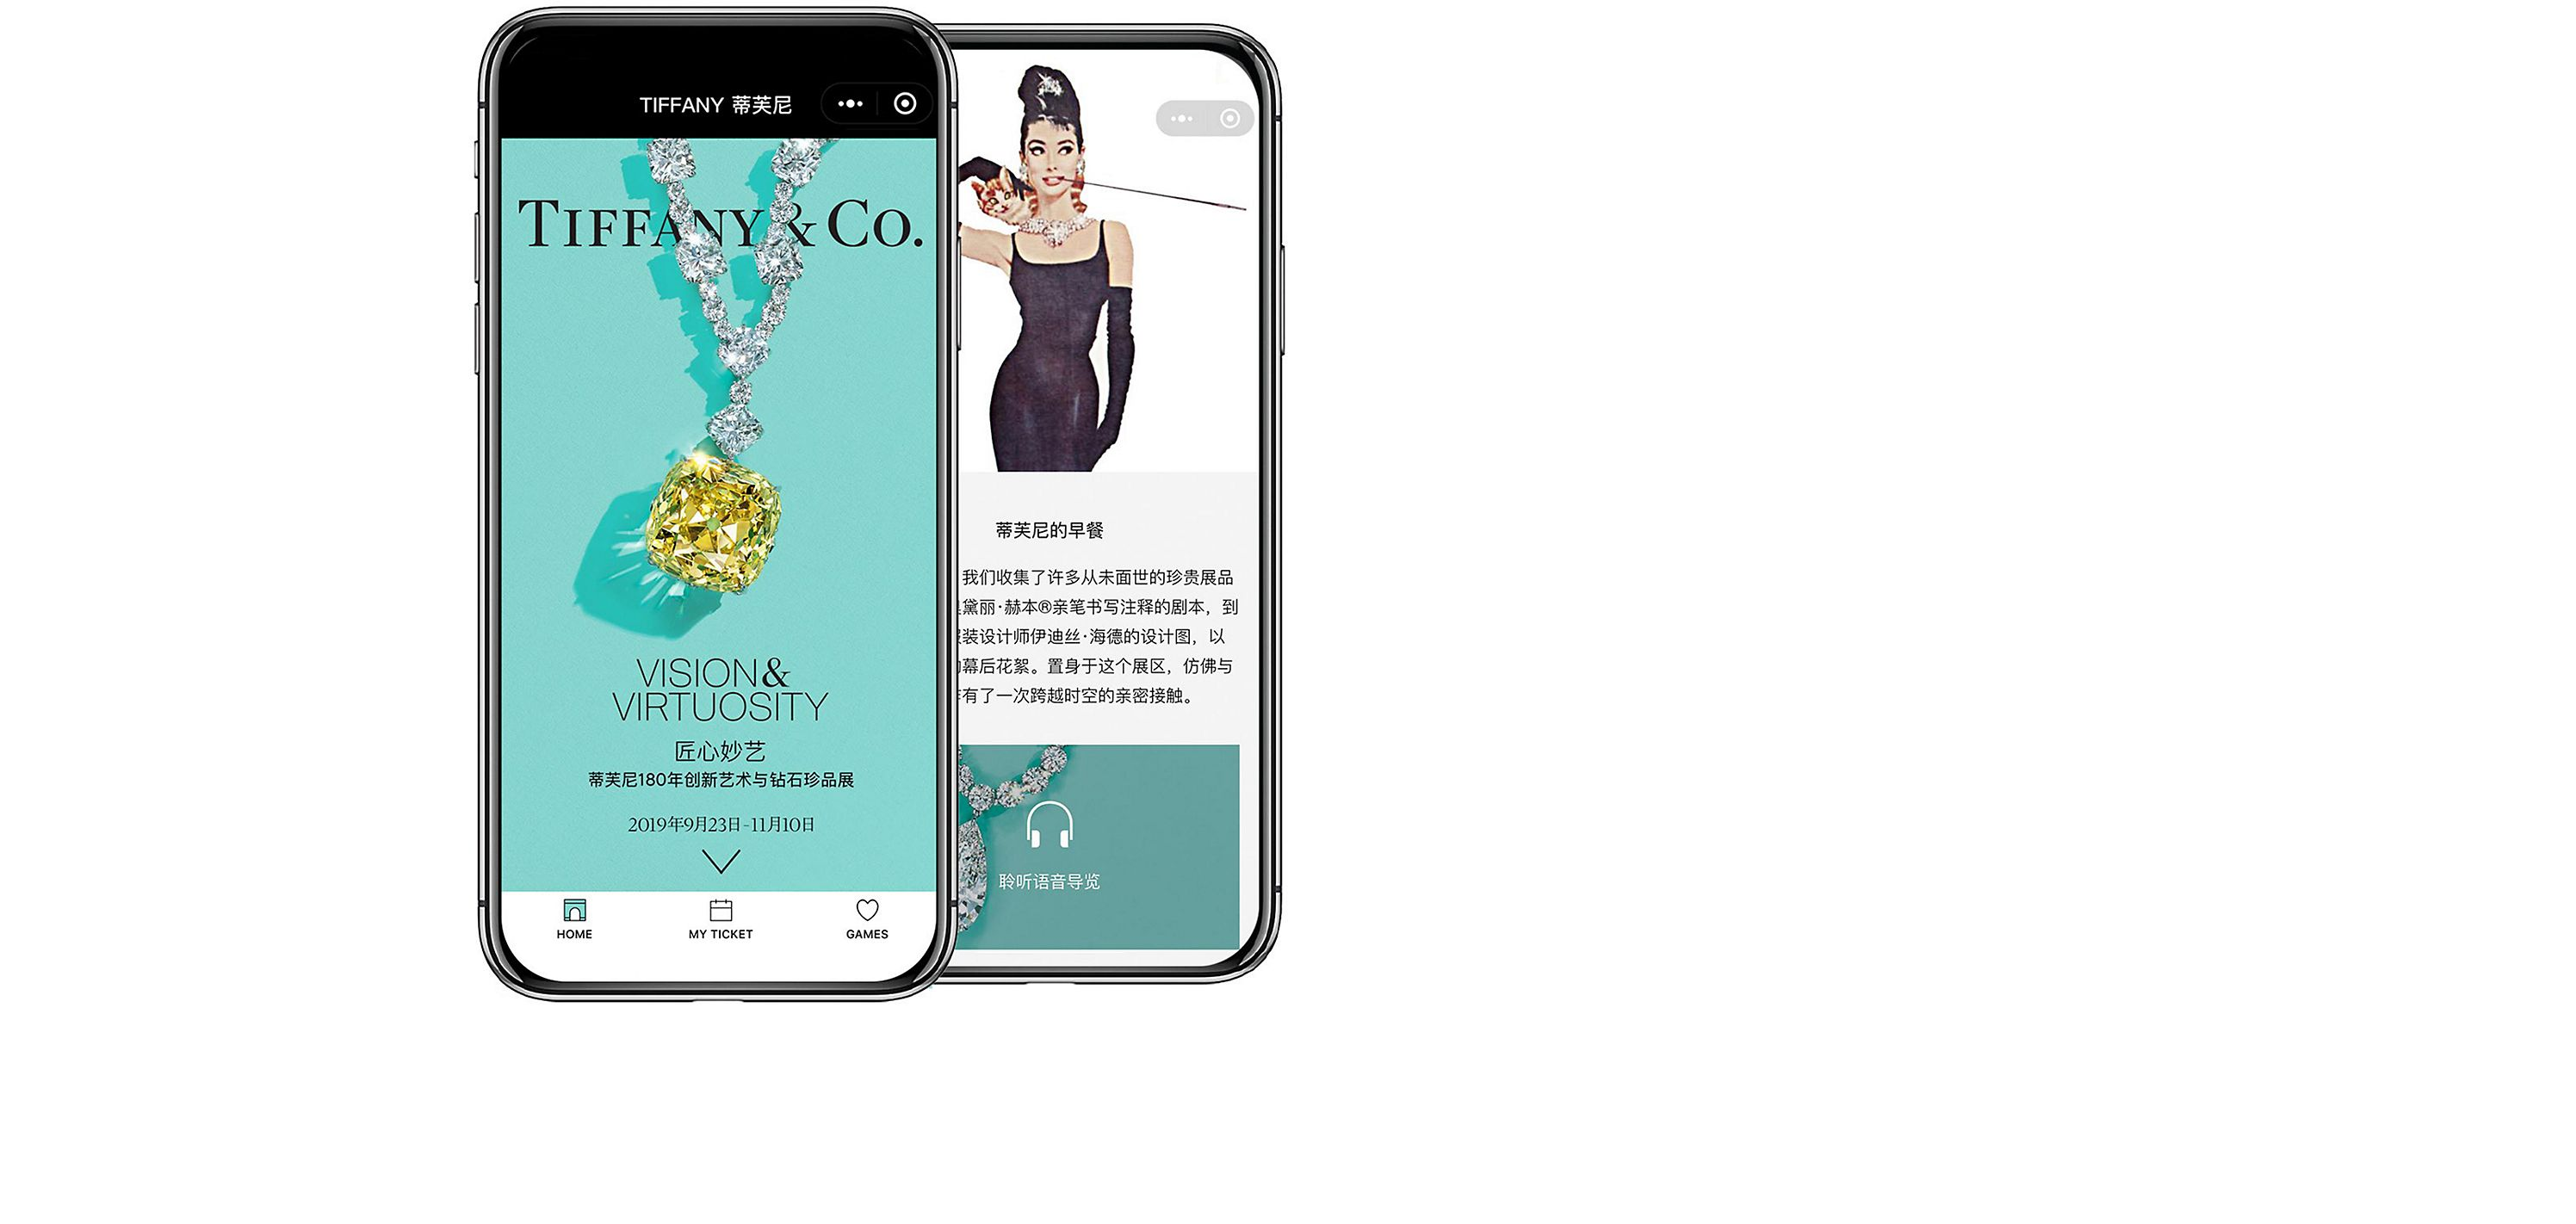 Tiffany & Co. WeChat